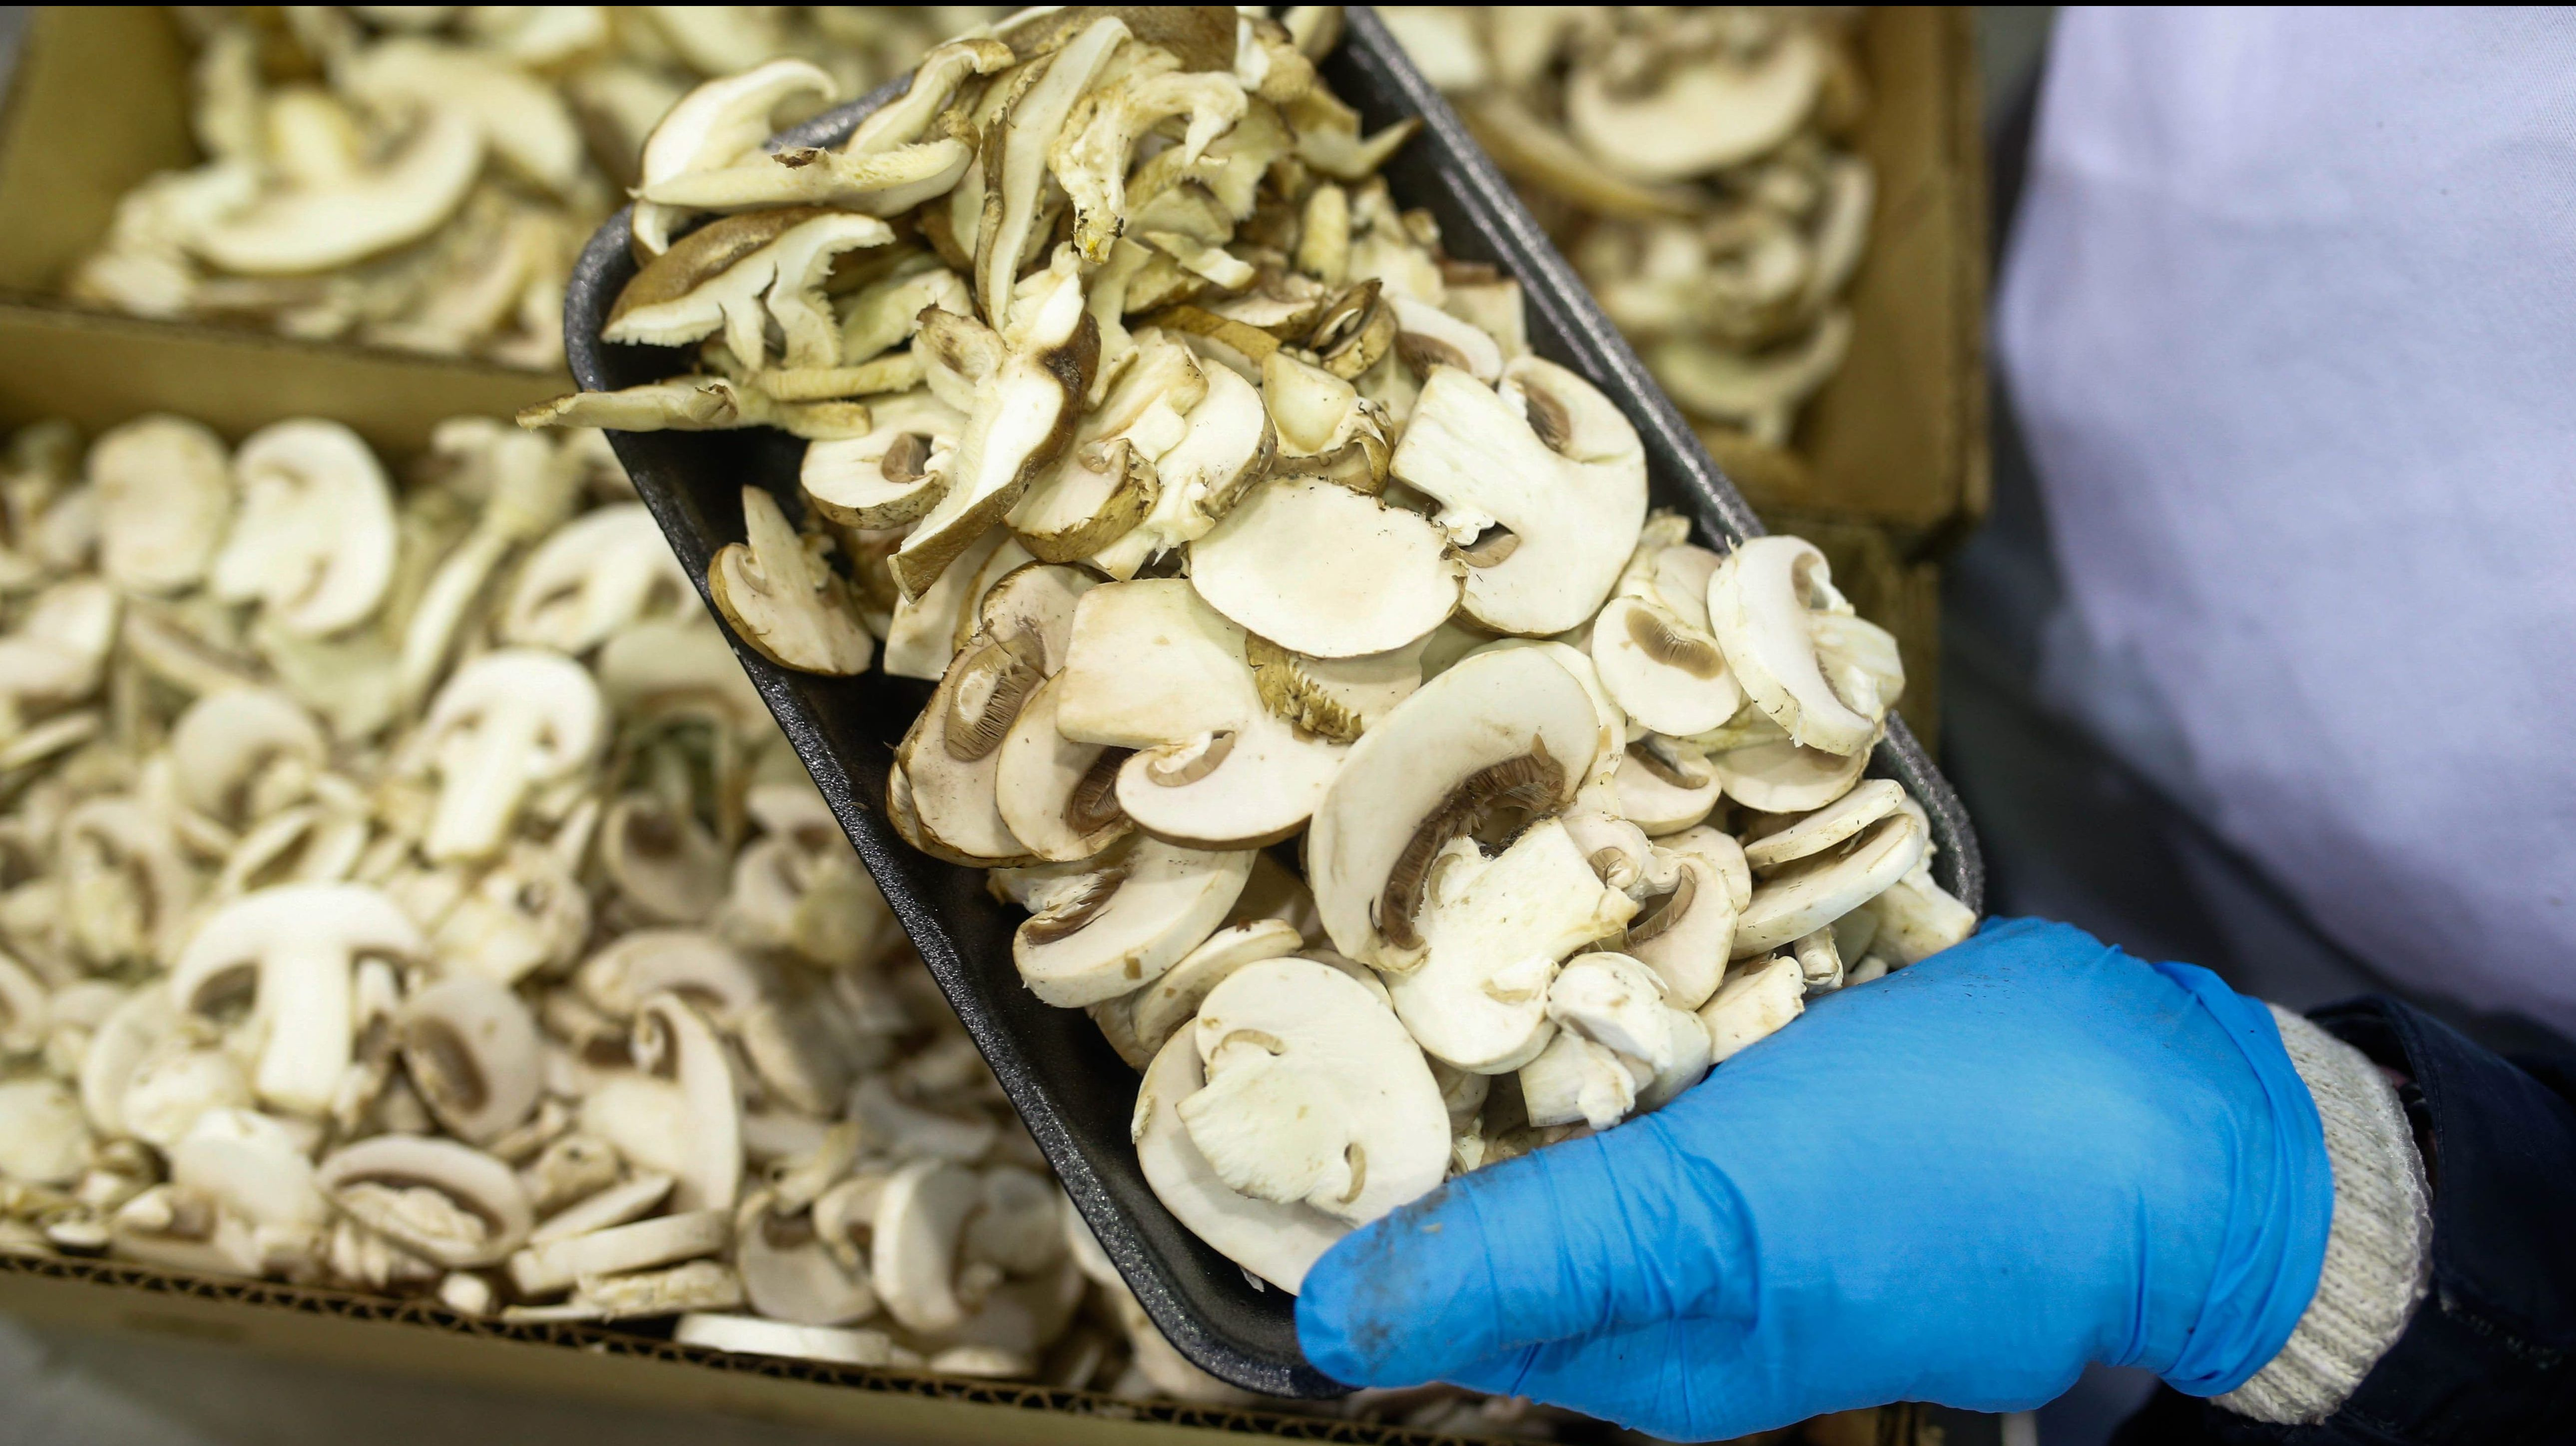 A worker packages commercial mushrooms.